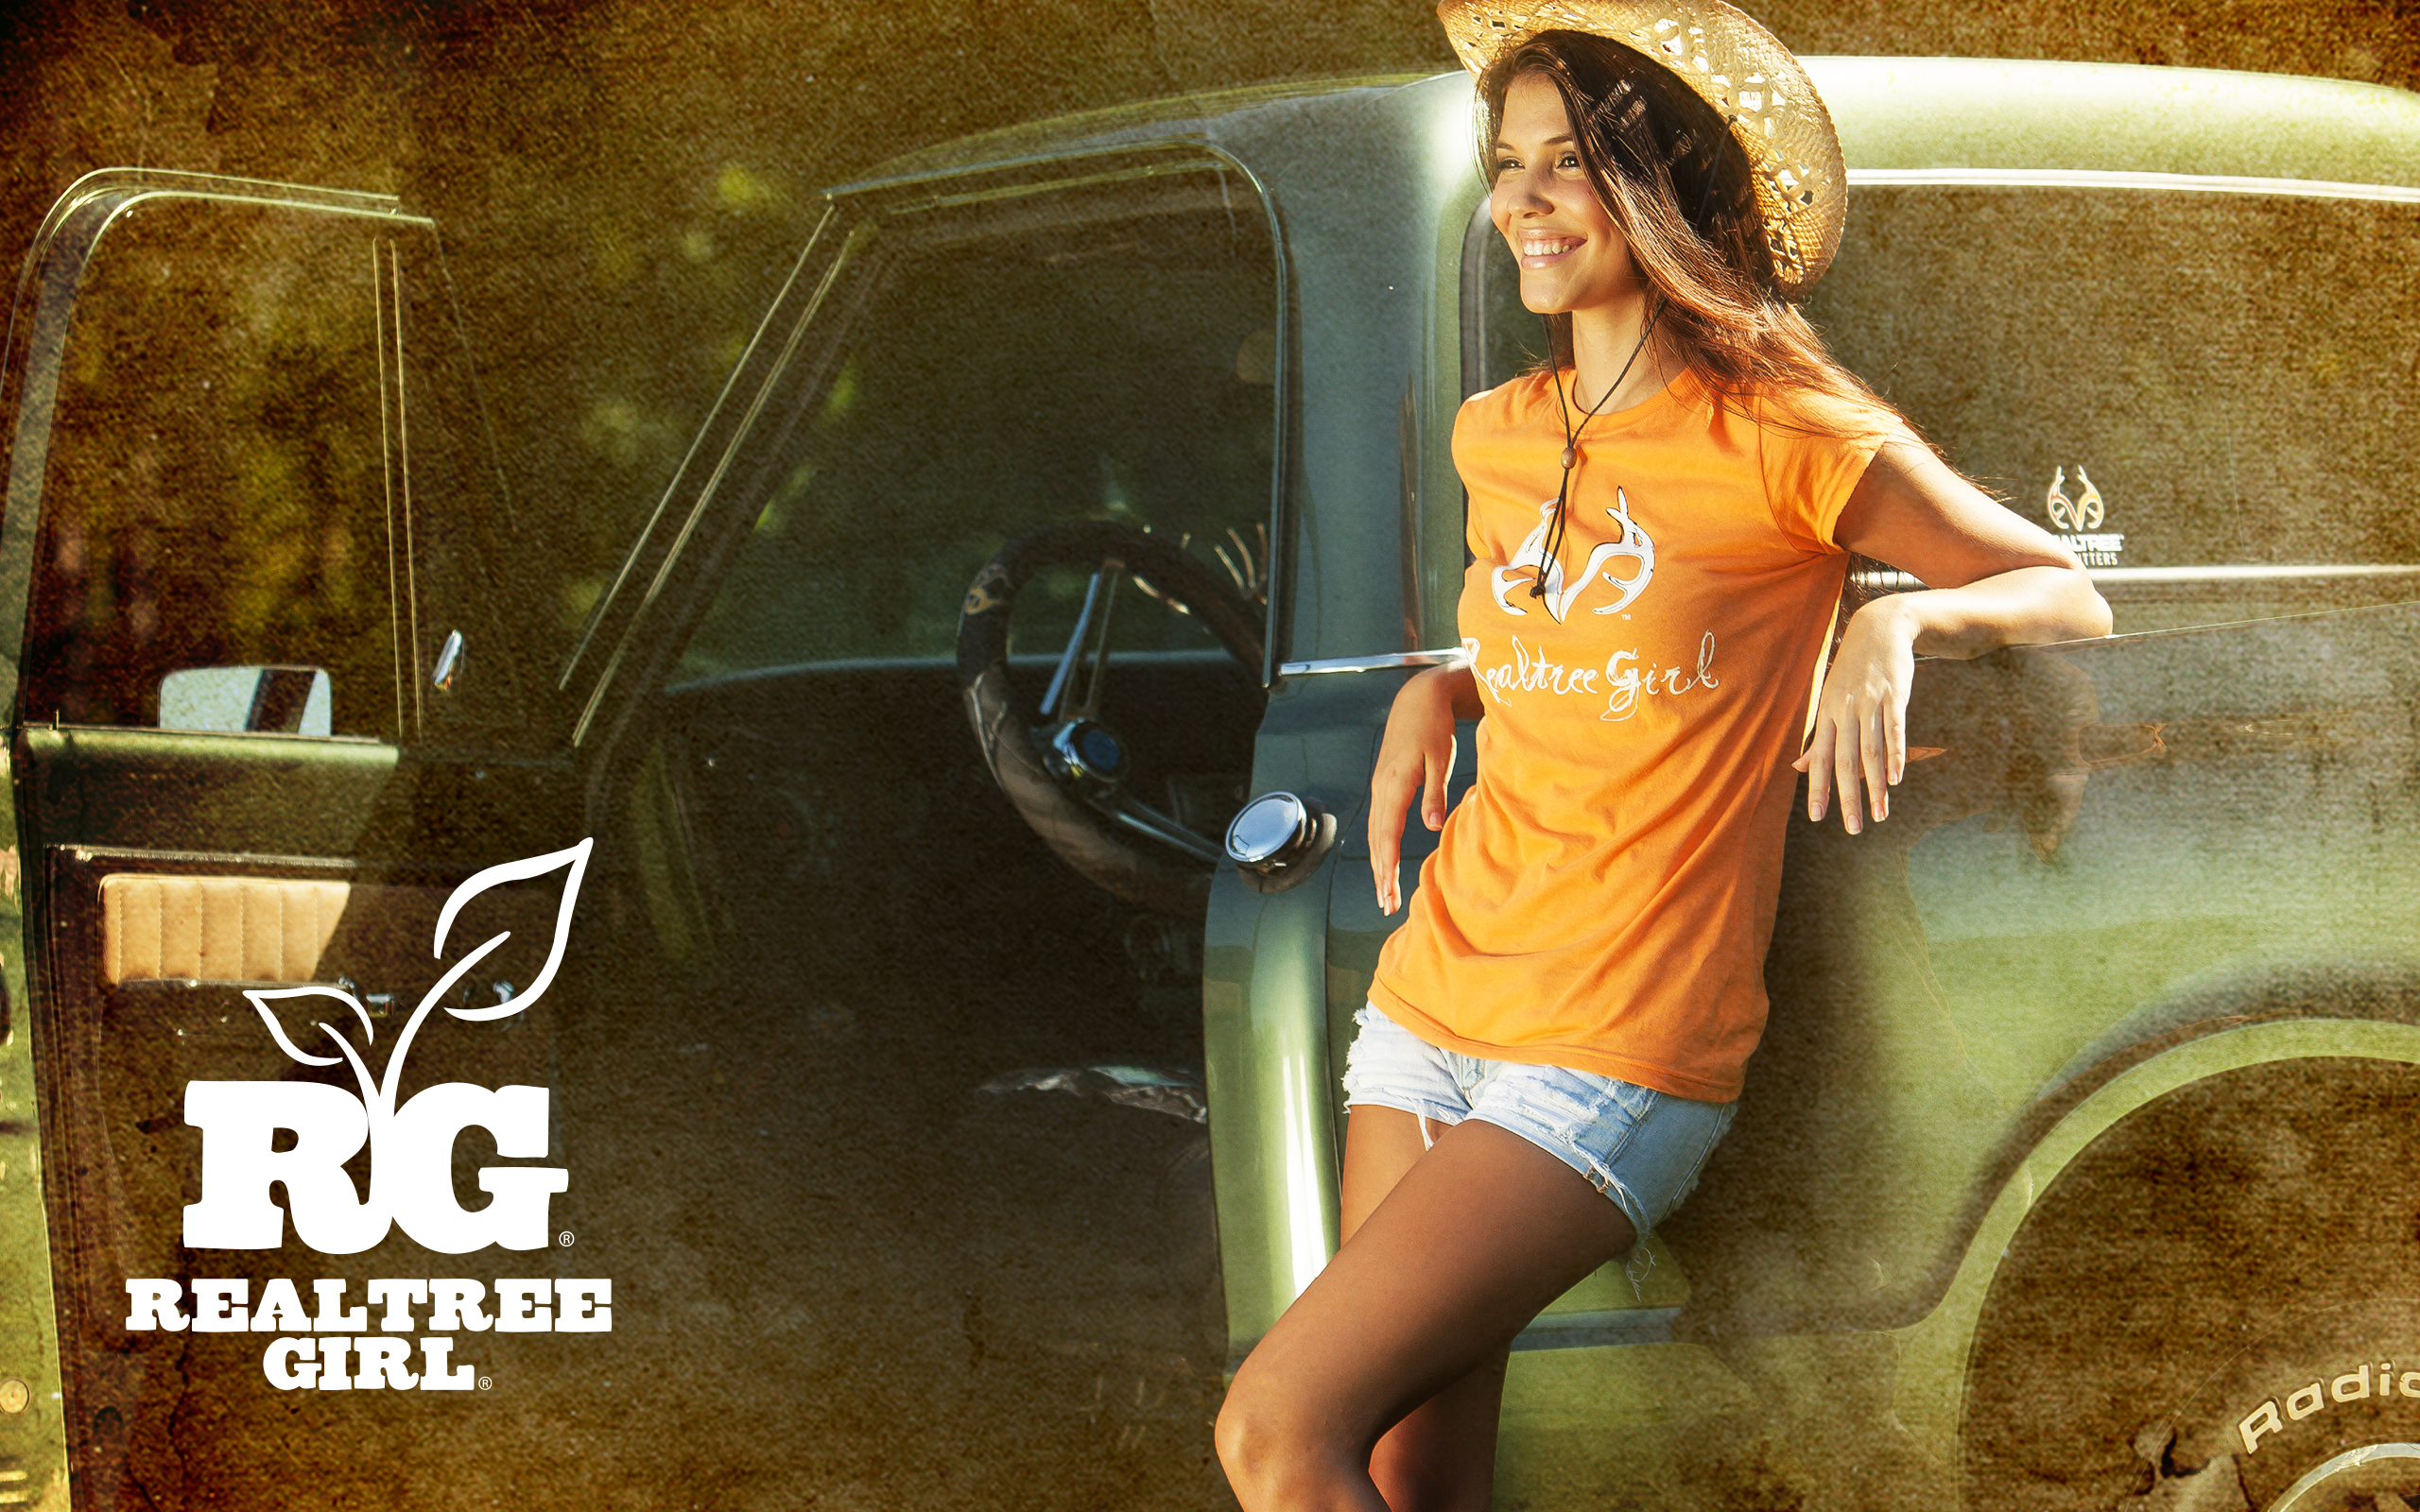 Realtree Girl Wallpaper /images/search?q=realtree